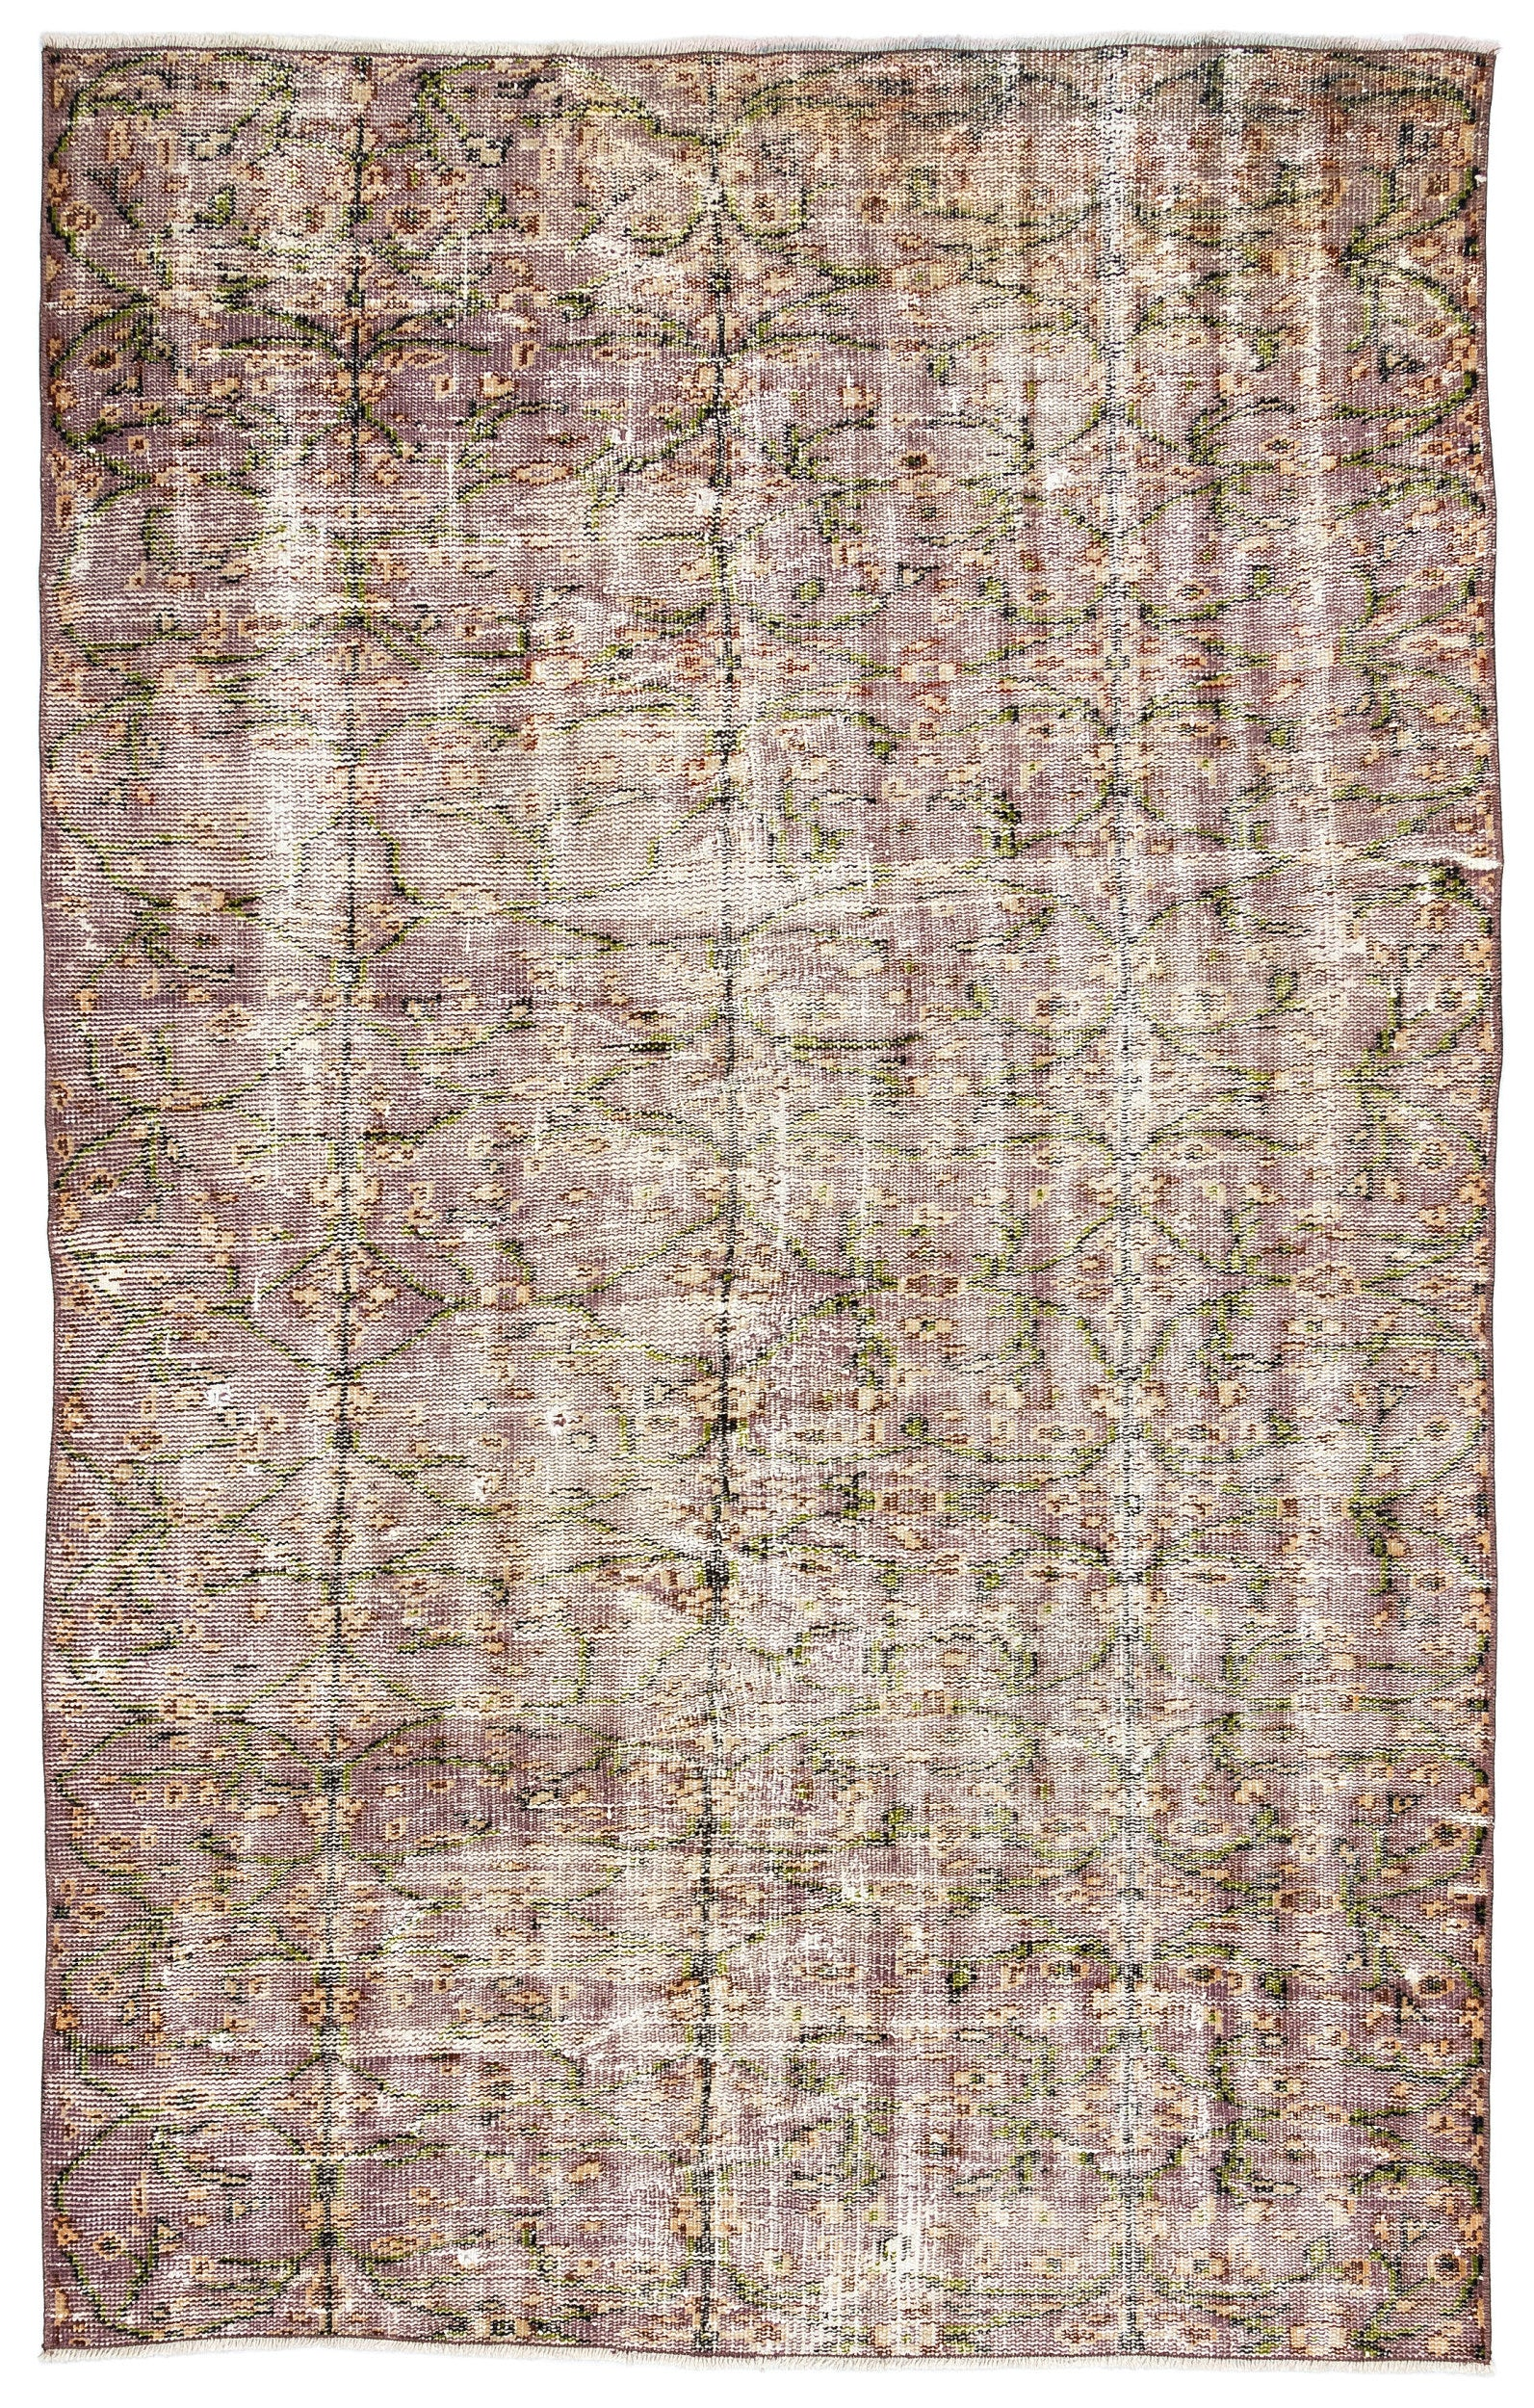 Retro Over Dyed Vintage Rug 4'9'' x 7'7'' ft 146 x 230 cm